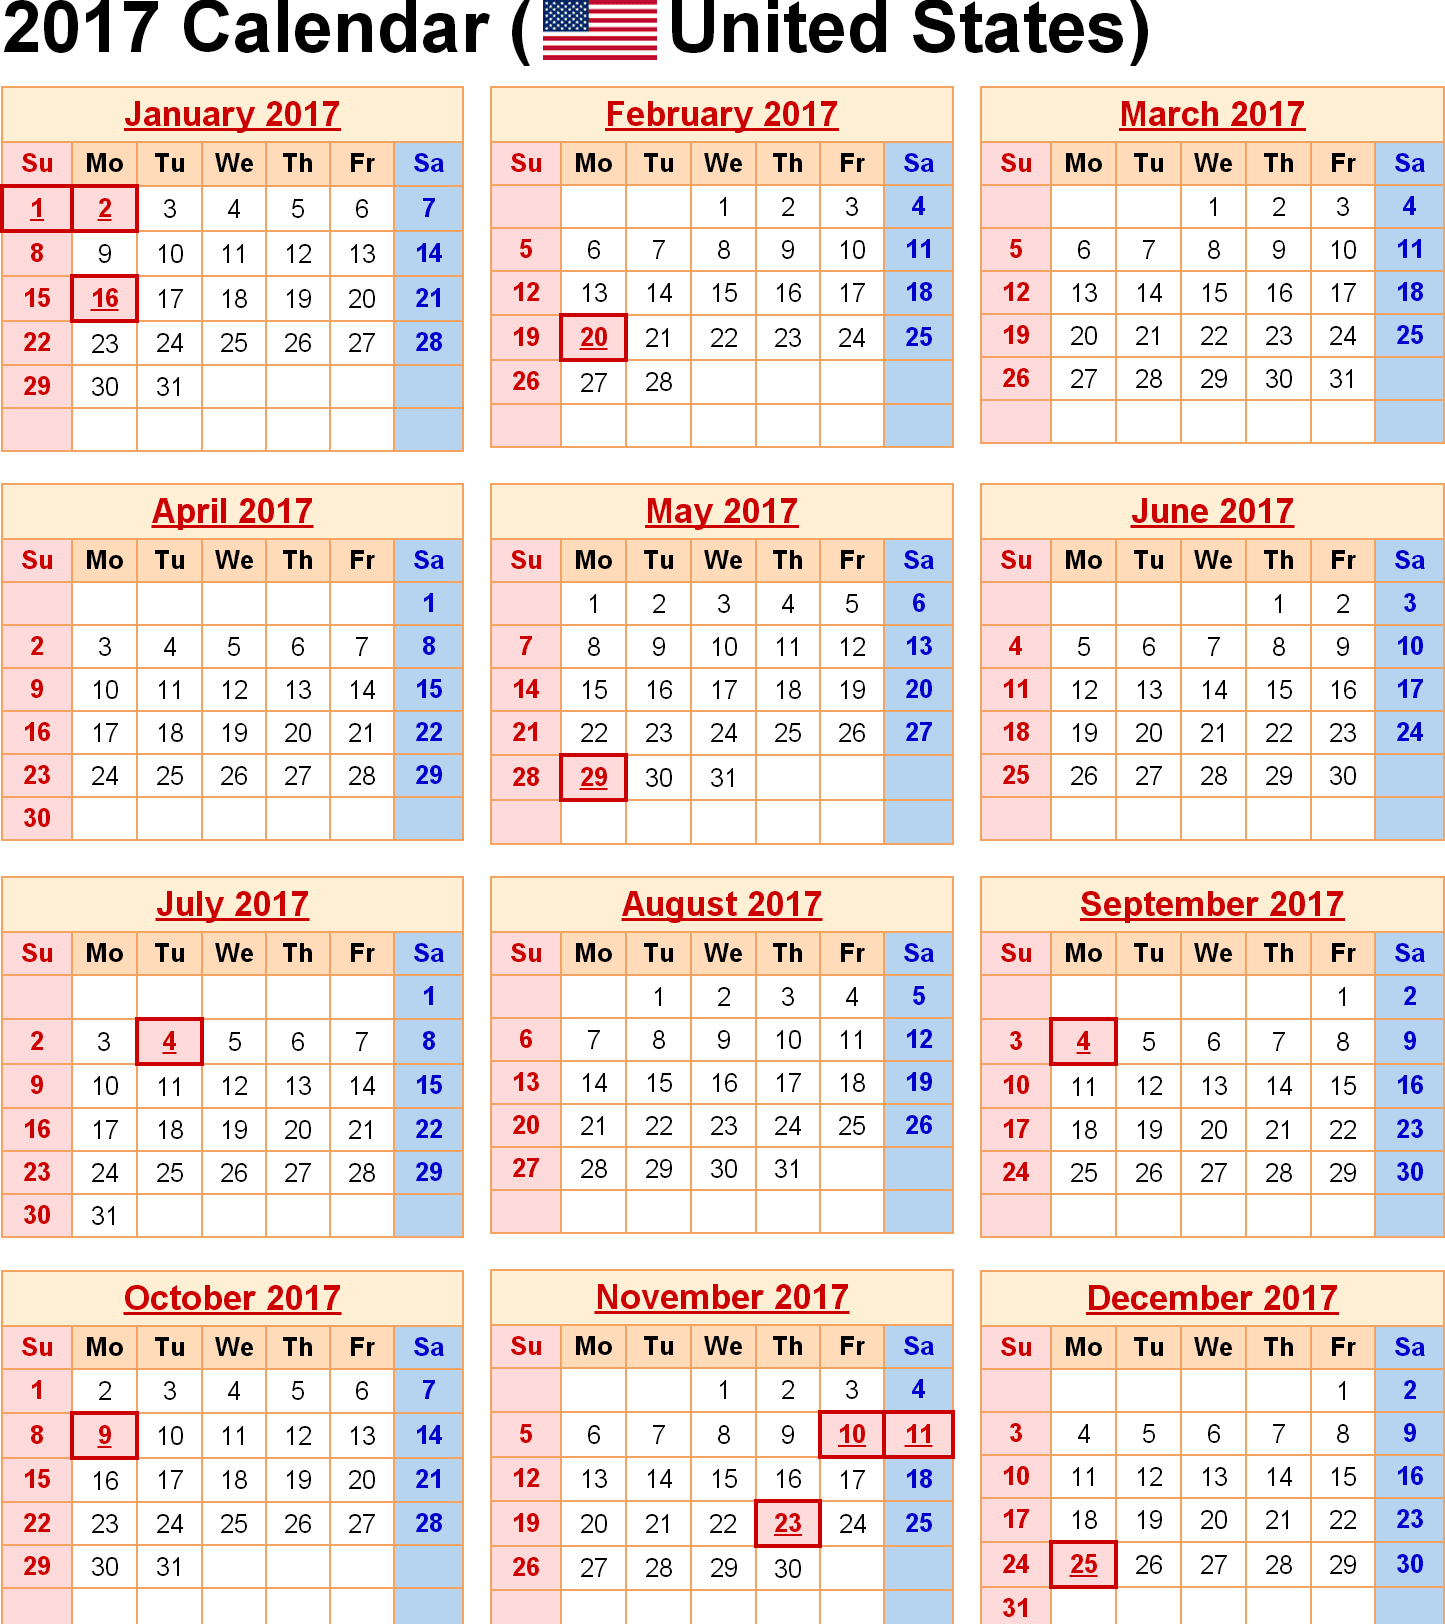 Holiday Calendar Us 2017 Calendar For Year 2017 United States Time And ...